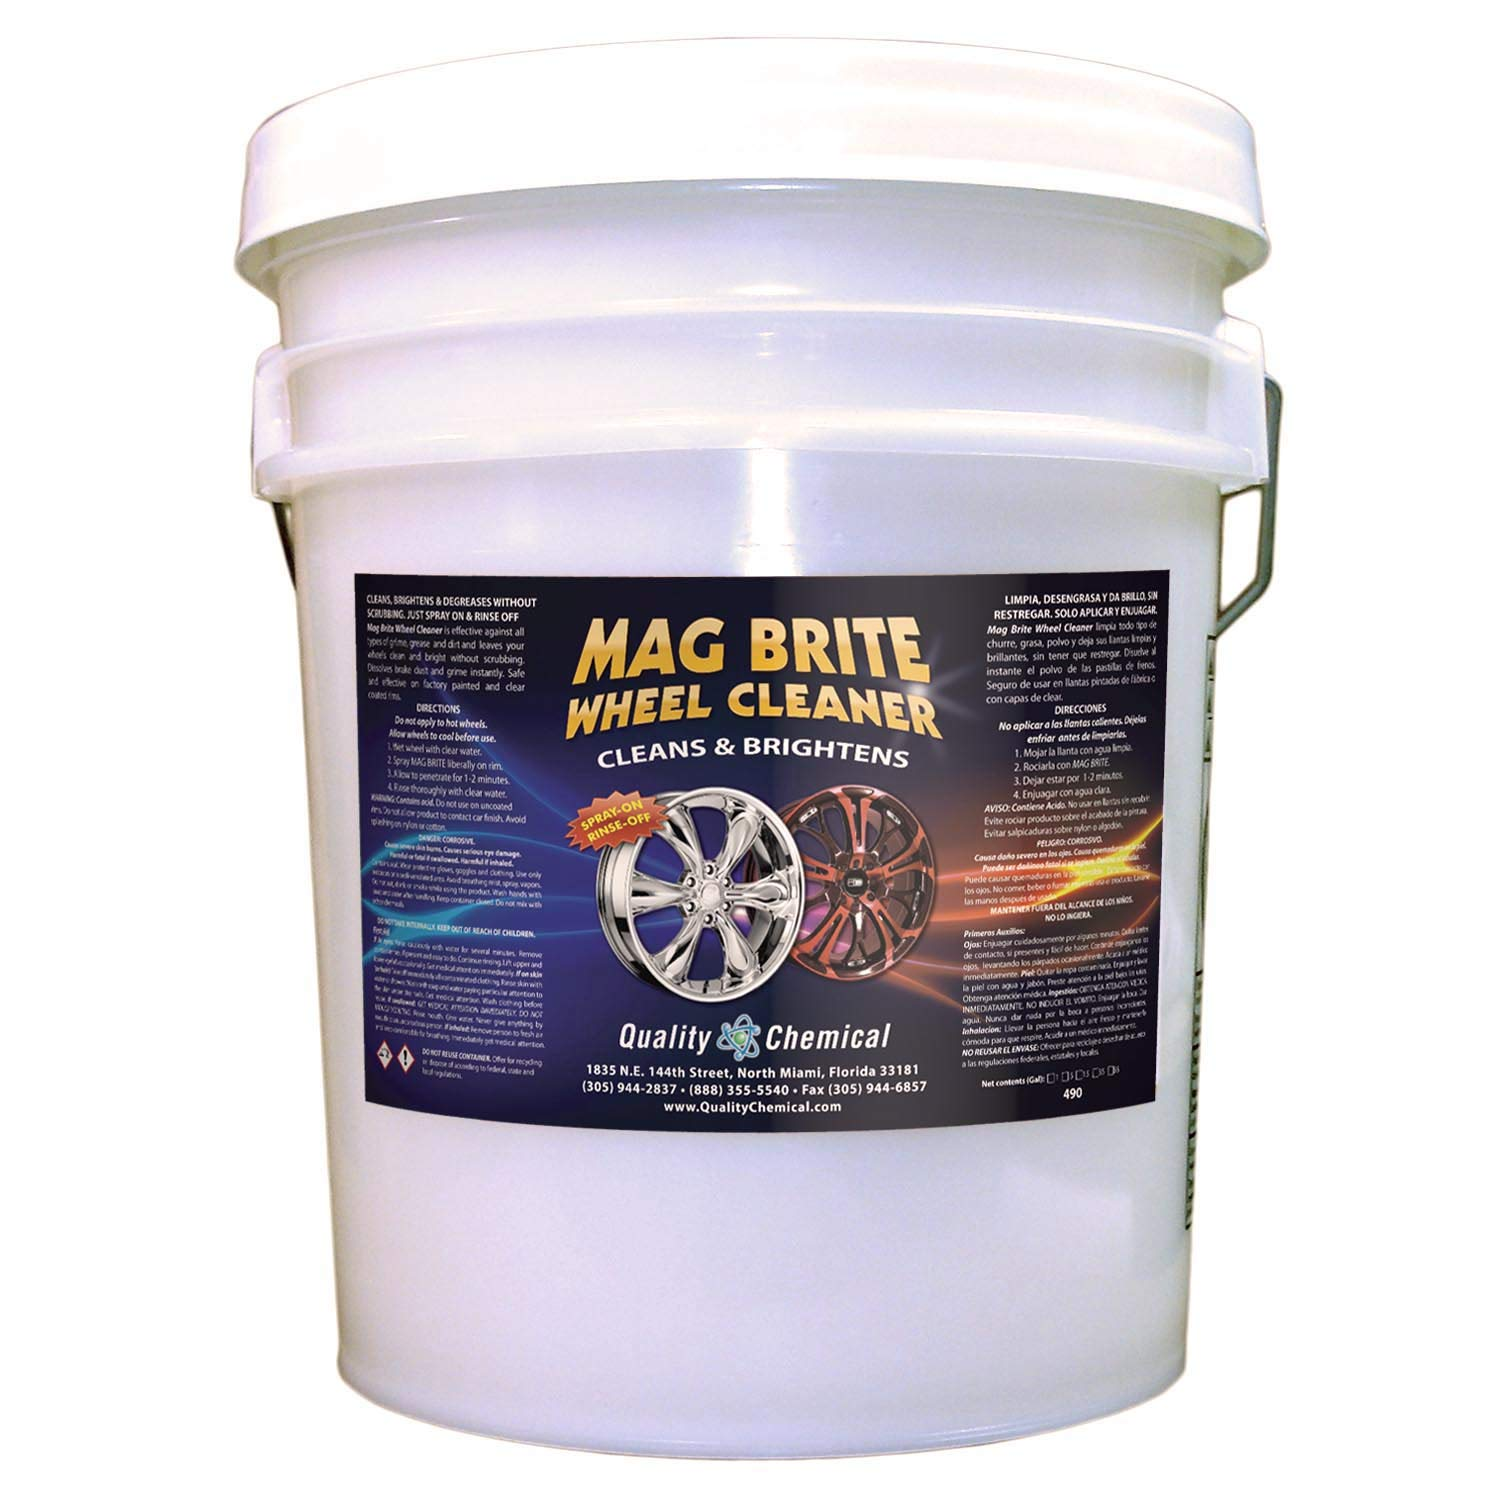 Quality Chemical Mag Brite - Acid wheel cleaner formulated to safely remove brake dust and heavy road film.-5 gallon pail